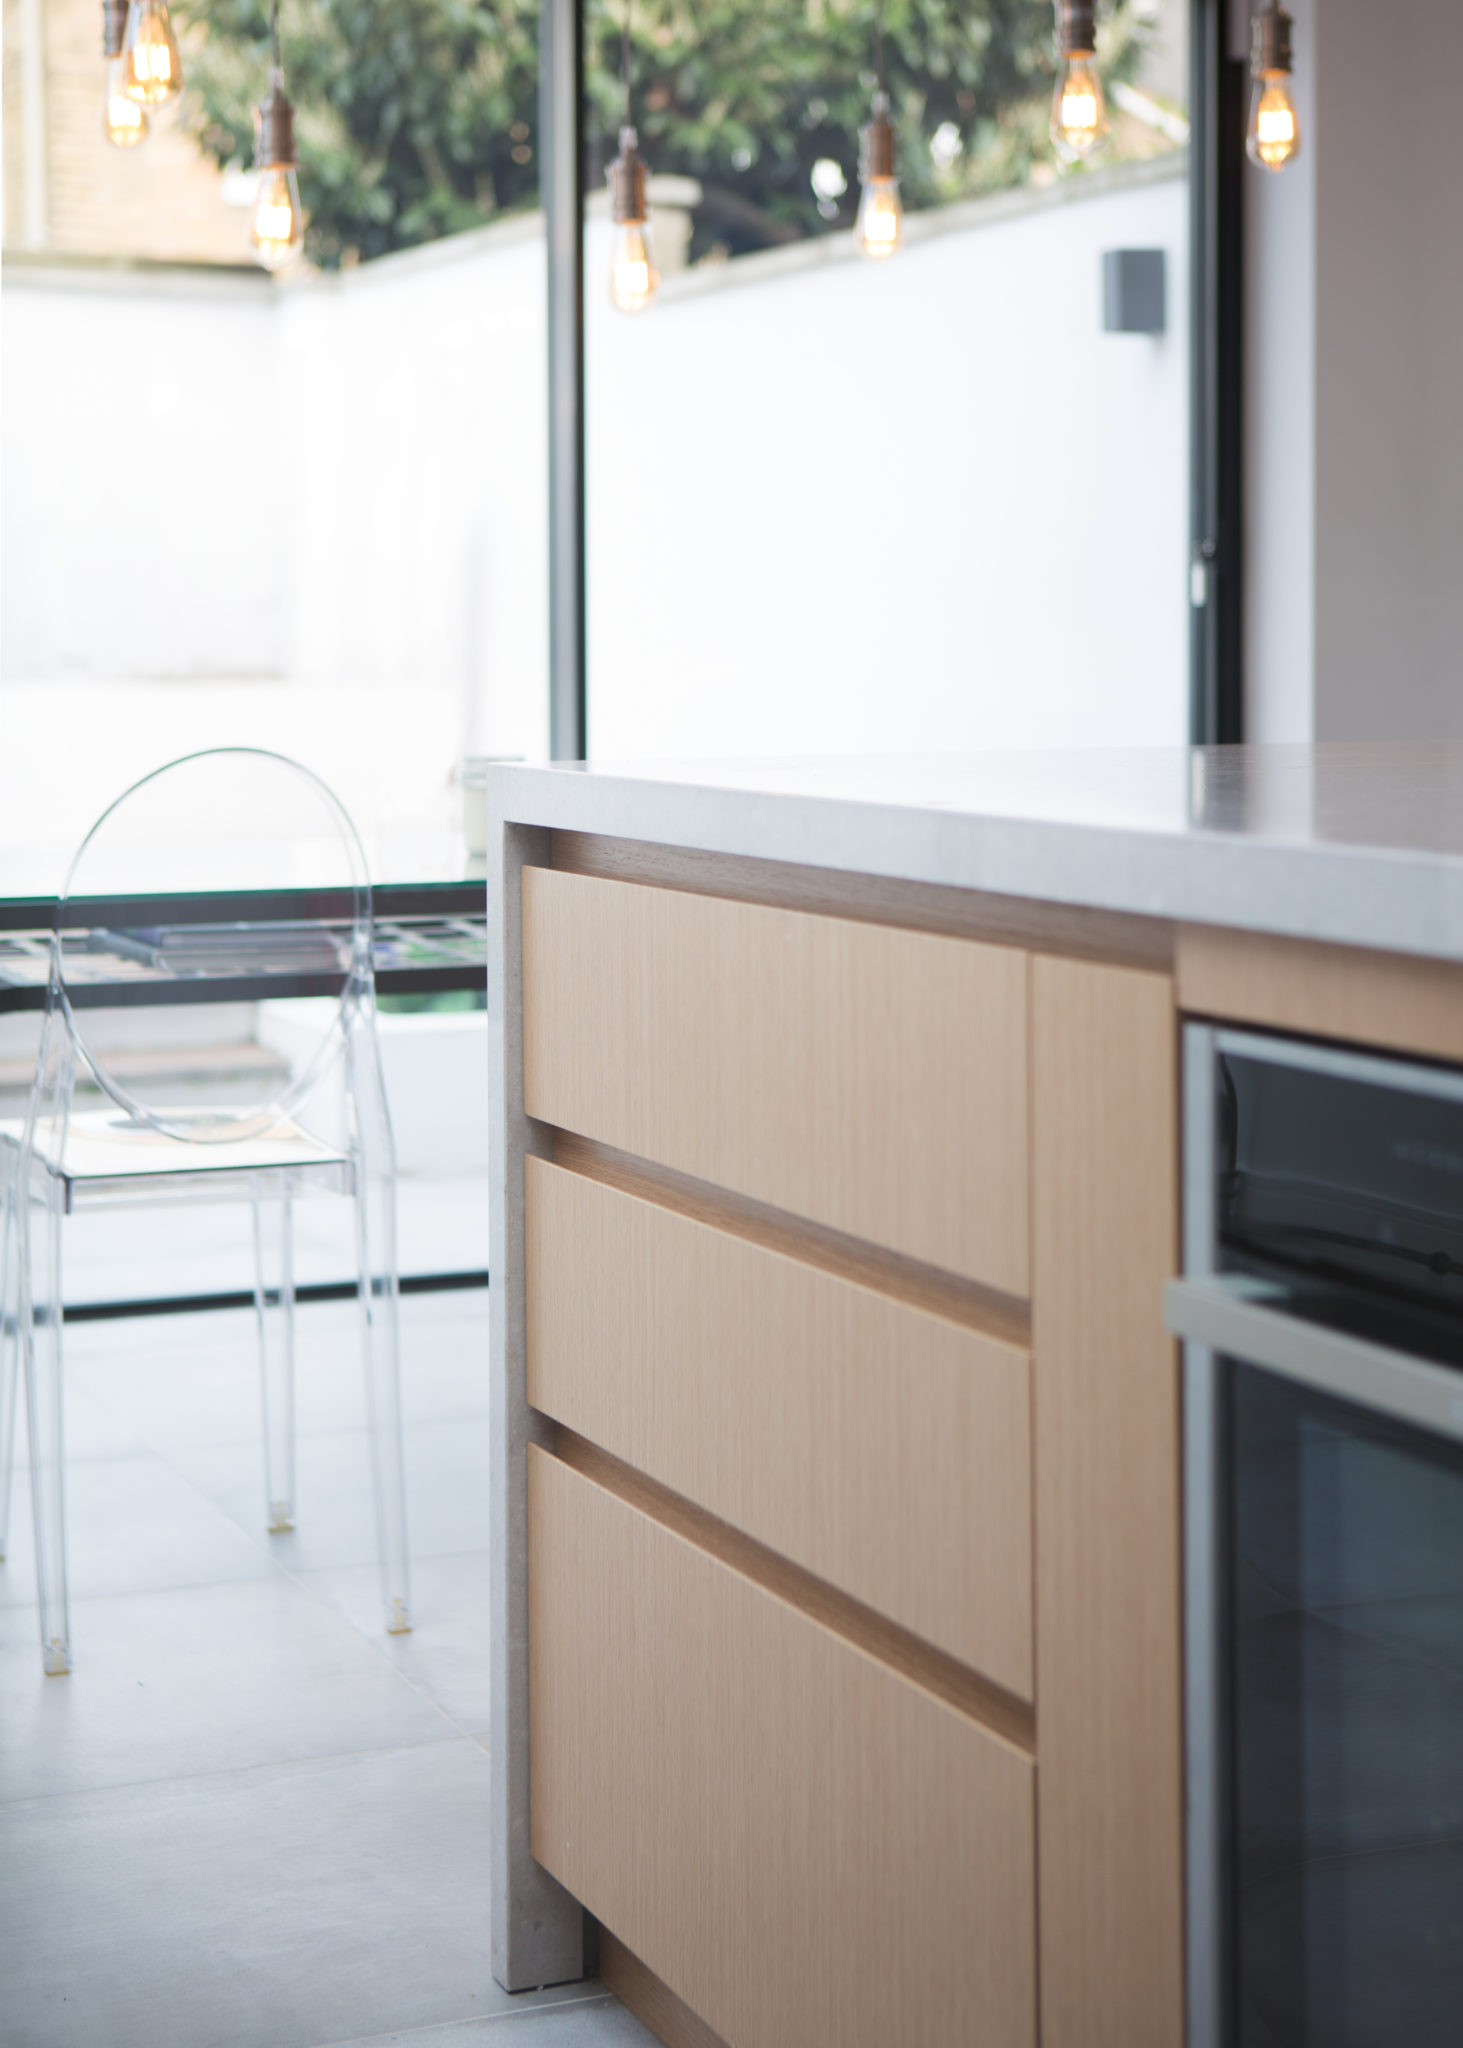 handle-less kitchen drawers